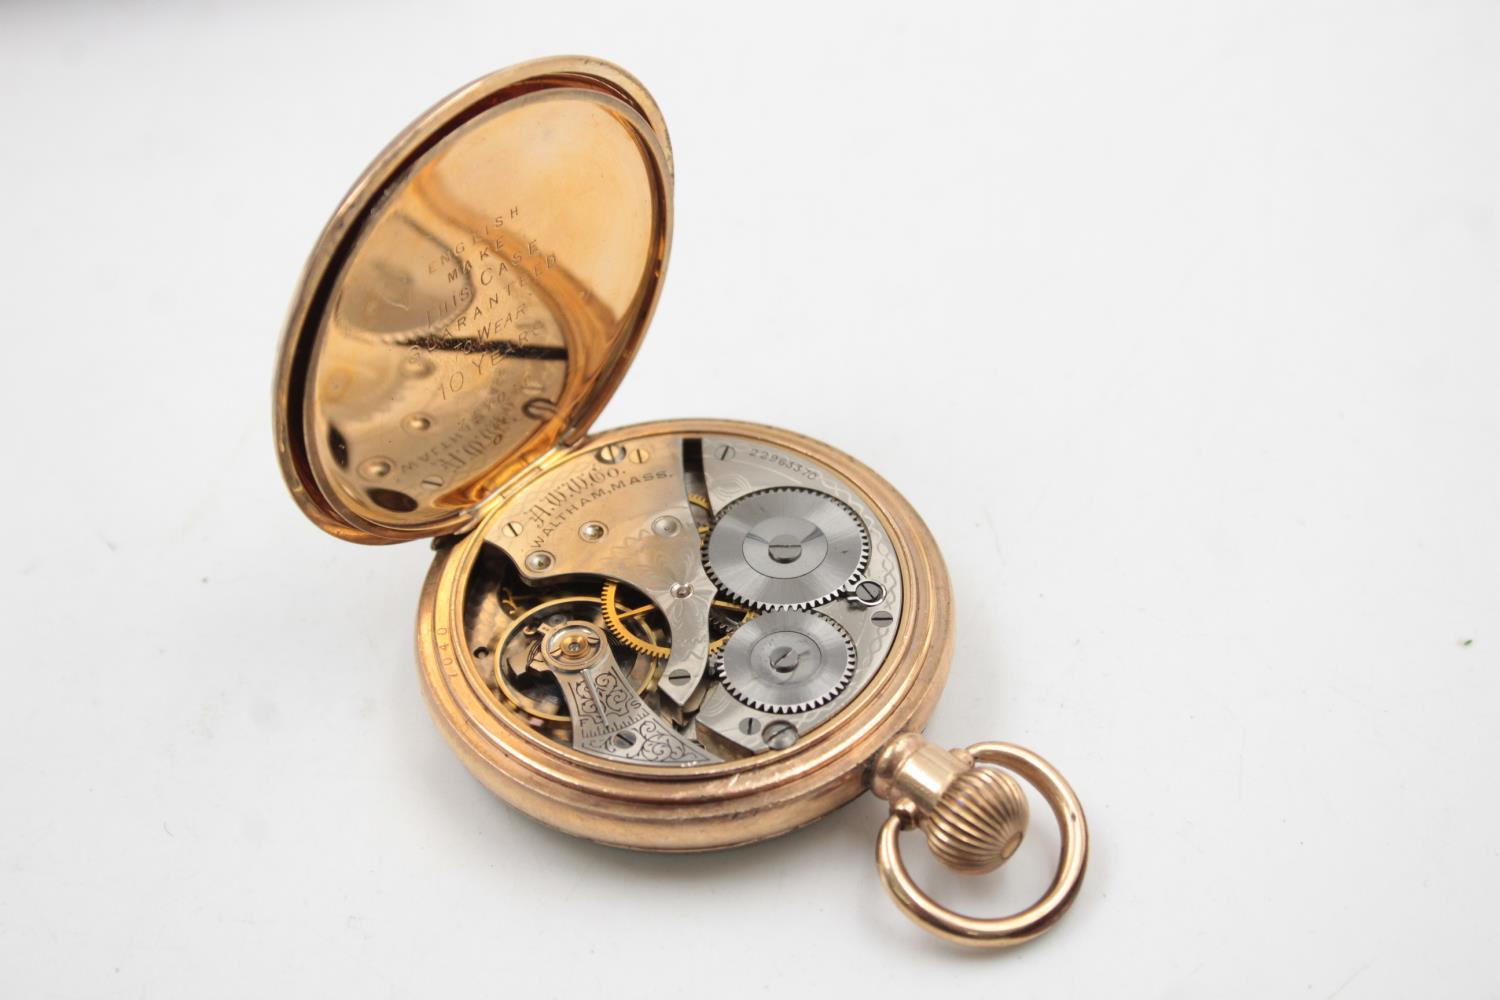 Vintage Gents WALTHAM Rolled Gold Open Face POCKET WATCH Hand-Wind (102g) - Image 4 of 6